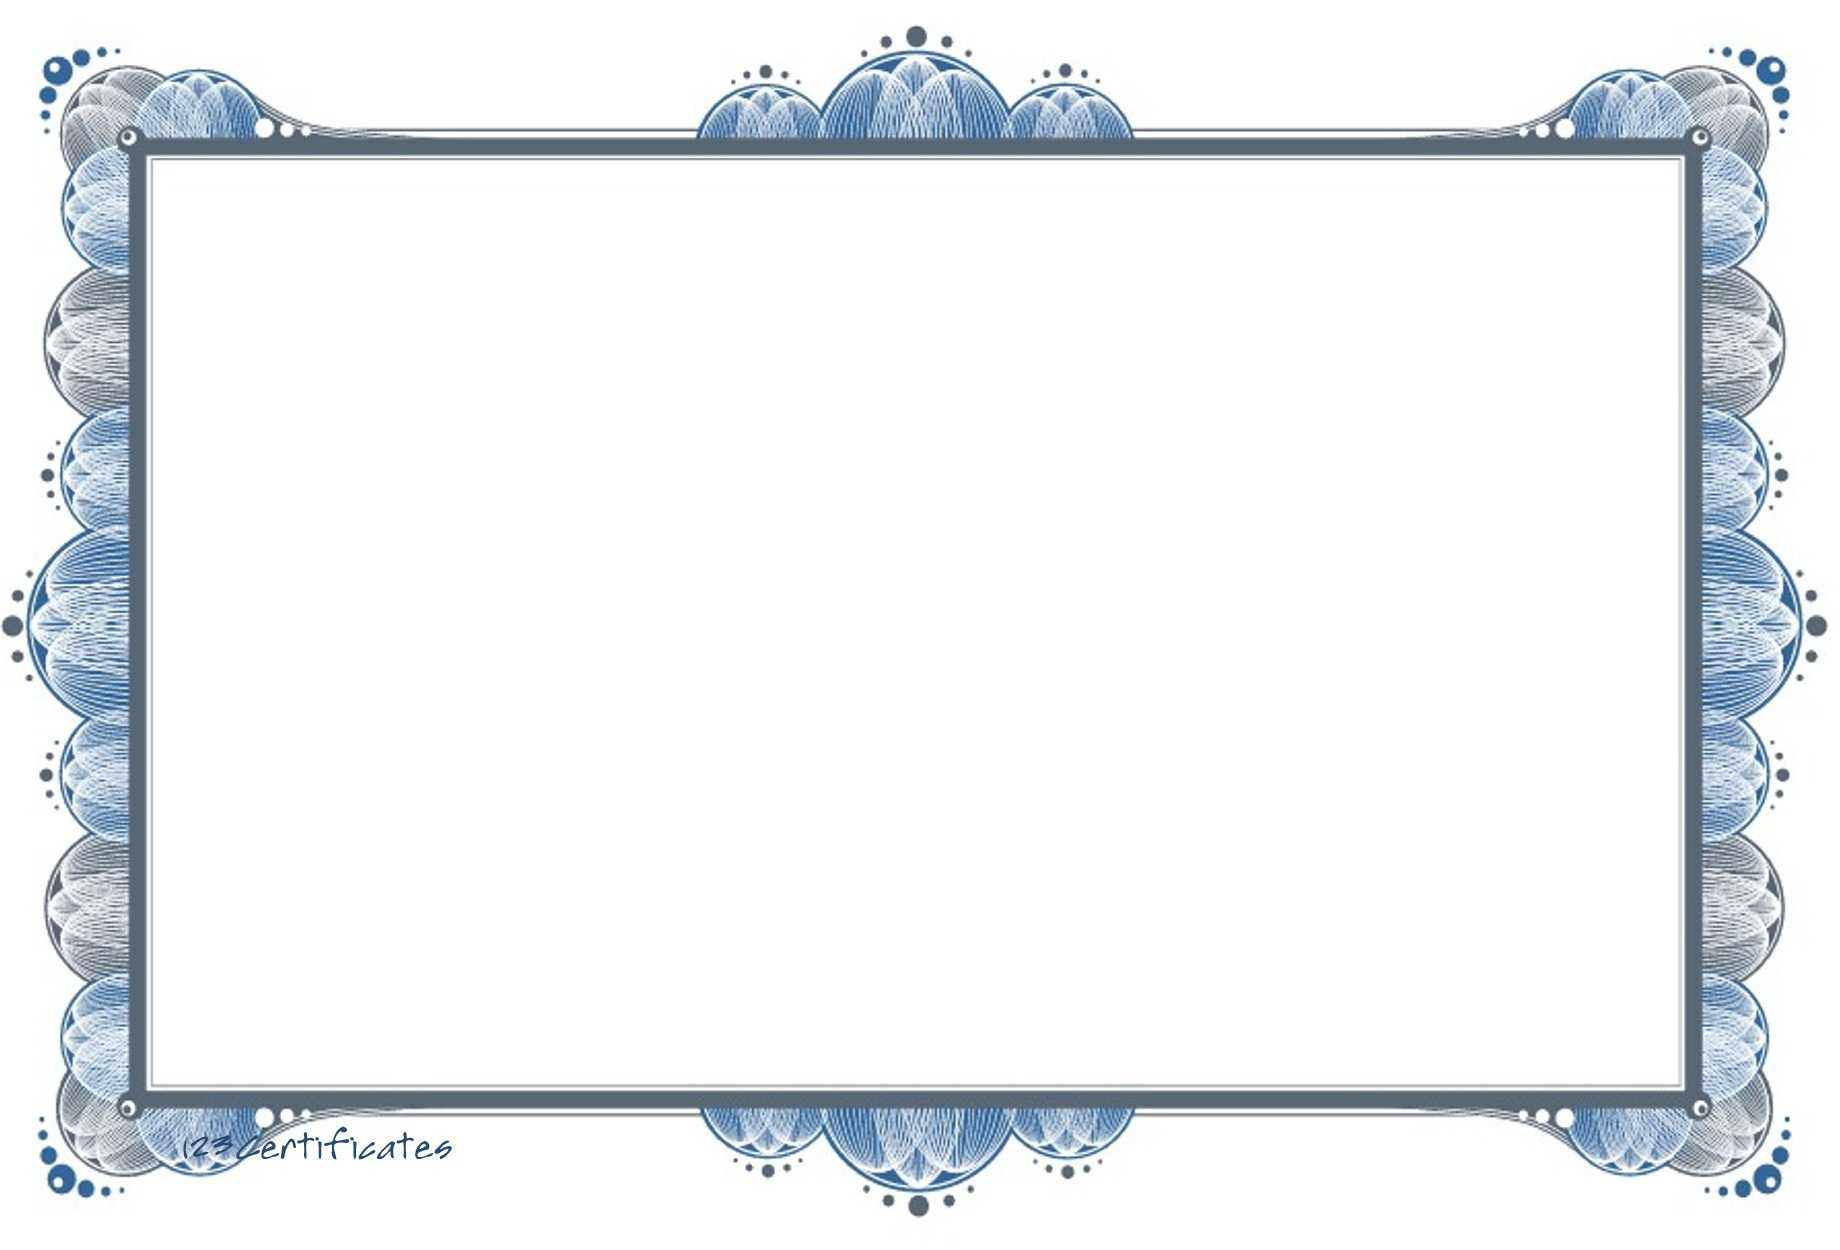 Free Certificate Border, Download Free Clip Art, Free Clip Intended For Free Printable Certificate Border Templates